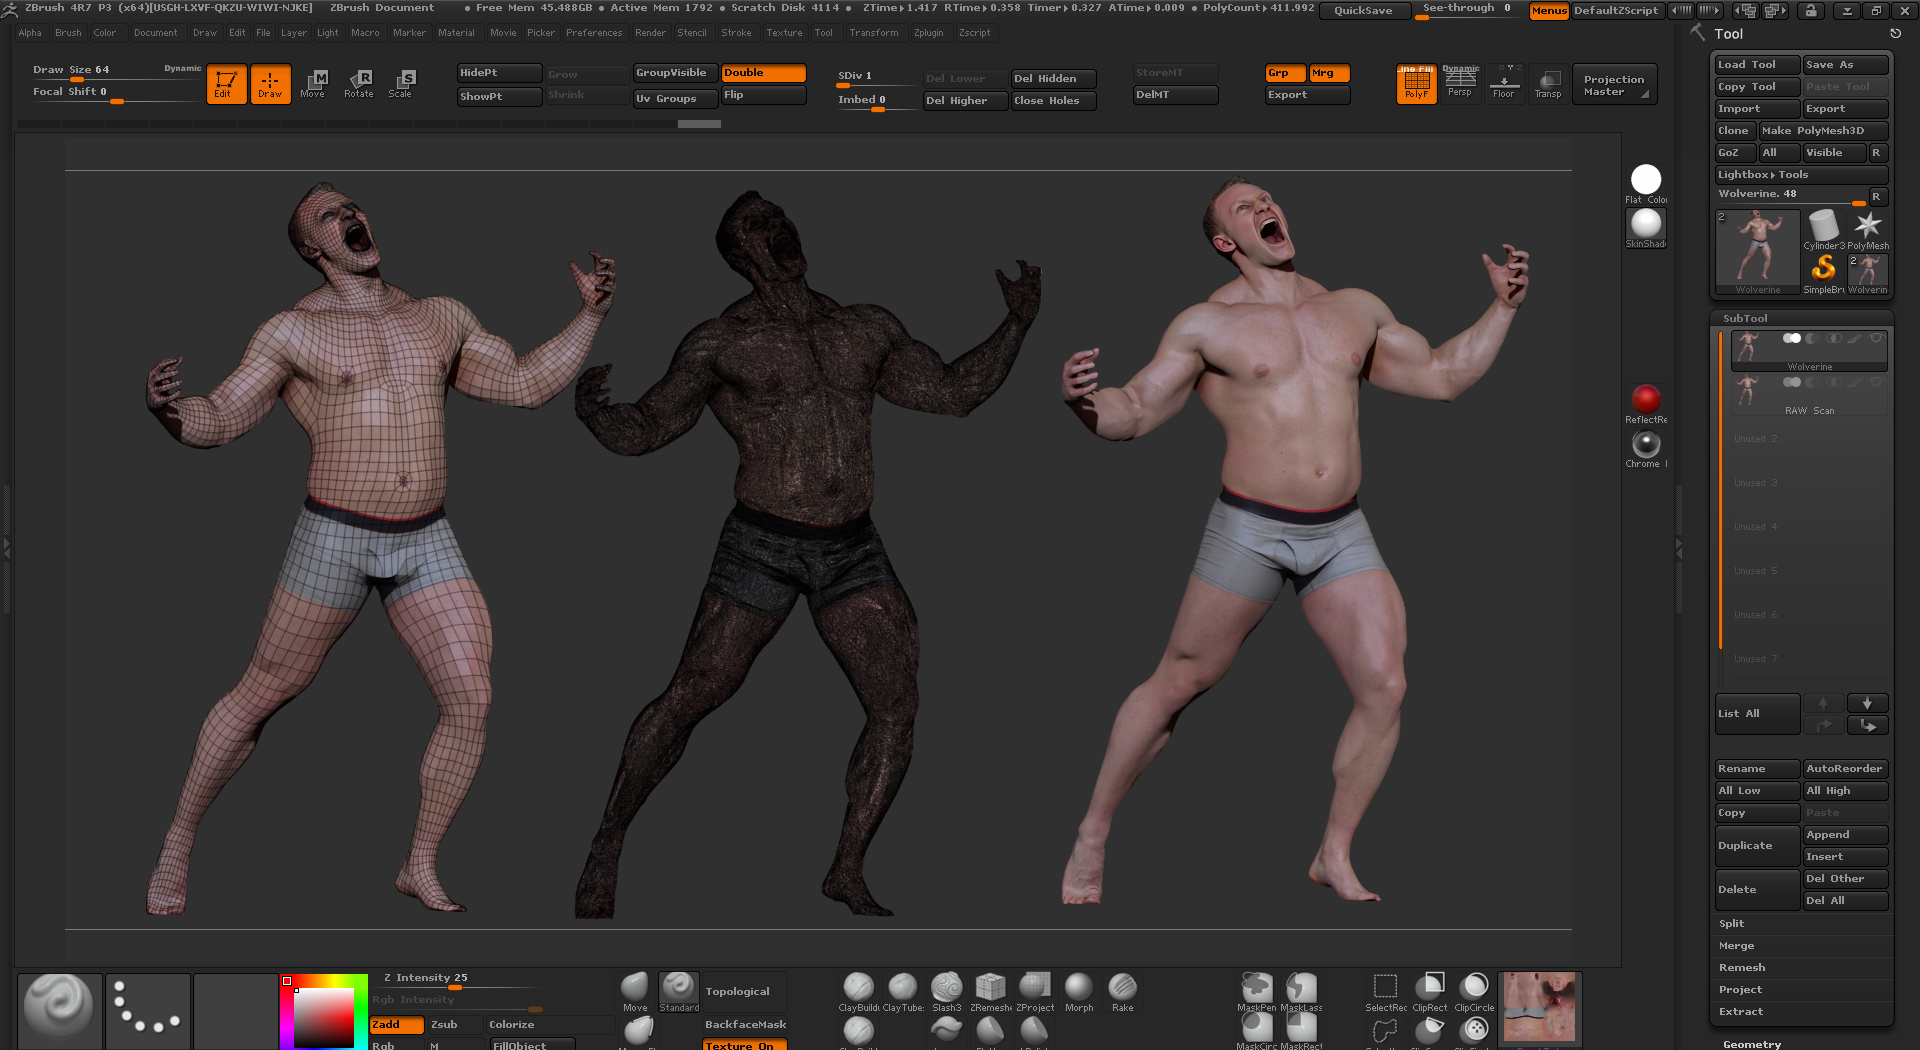 Free 3D Scans of Male Figure from Ten24 with ZBrush, tutorial included